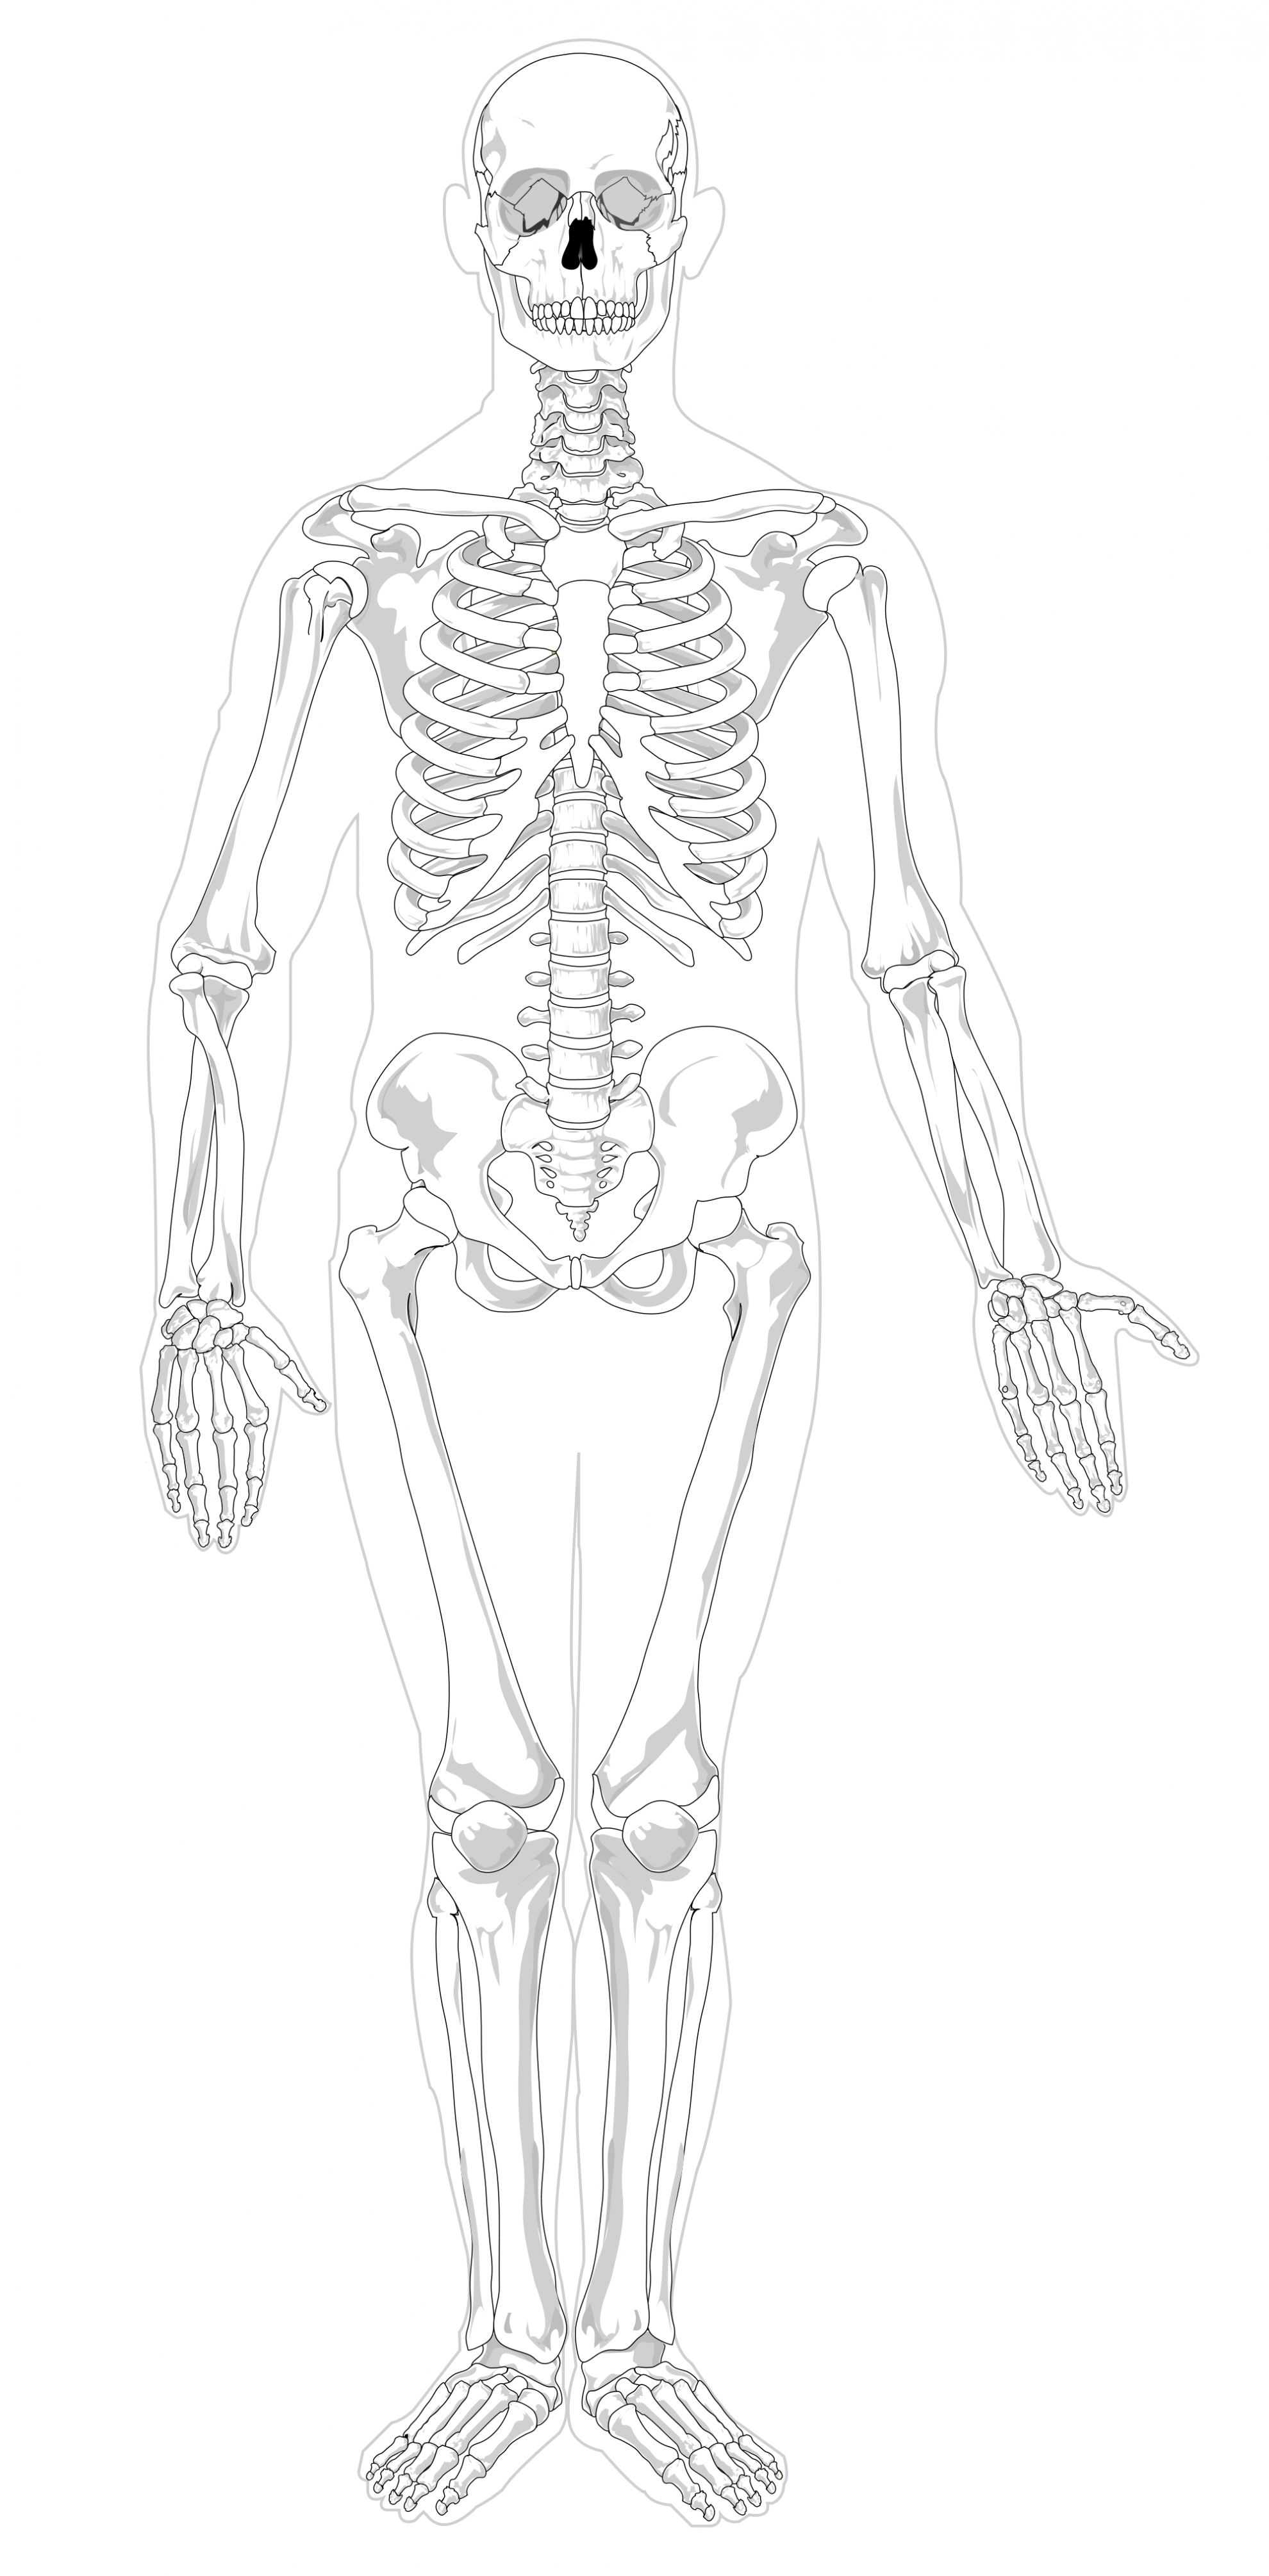 medium resolution of unlabeled diagram of the human skeleton unlabeled diagram of the human skeleton bones of the